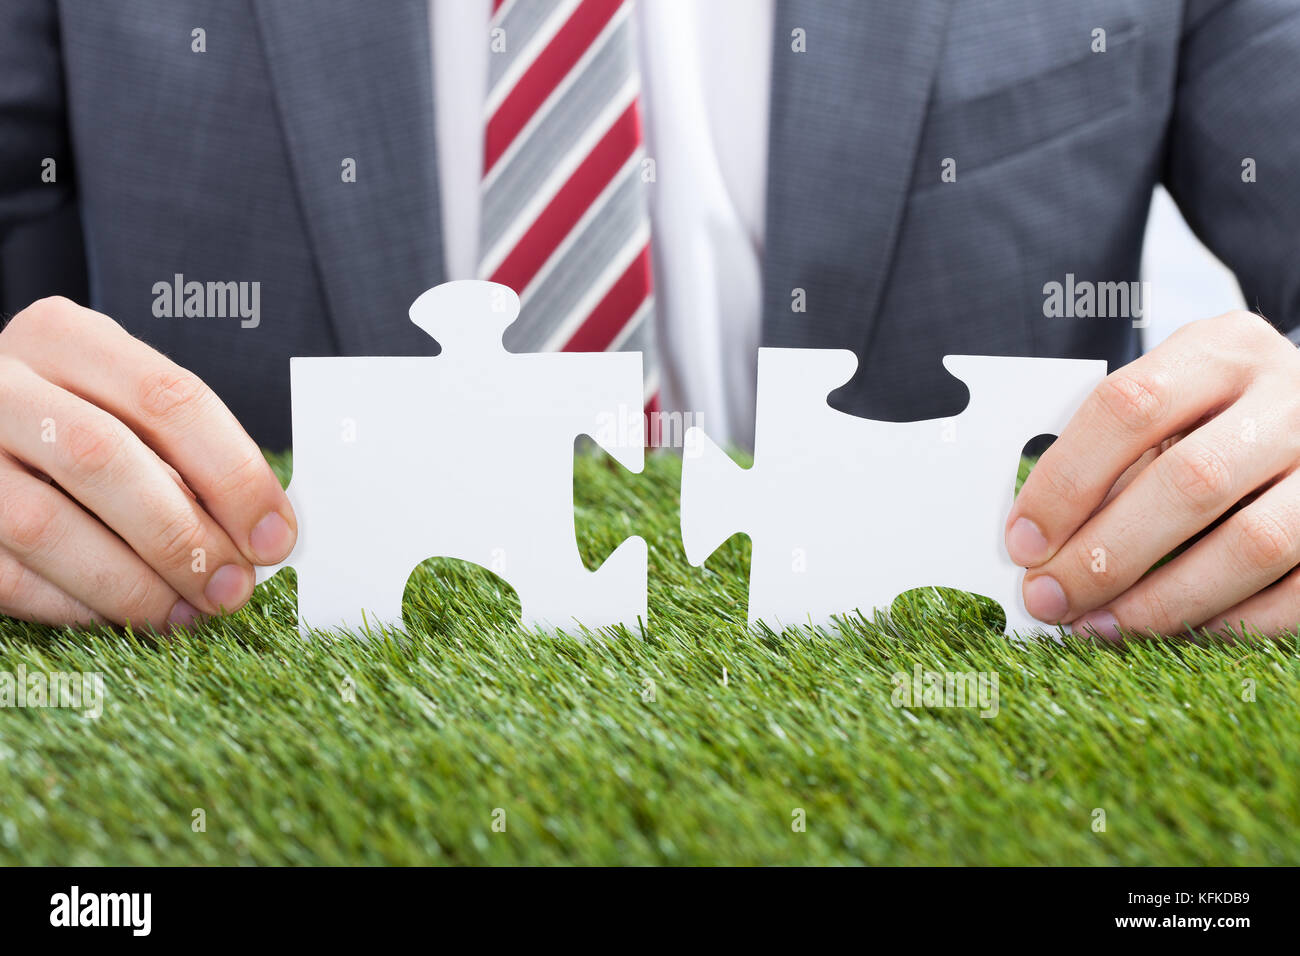 Closeup of businessman joining puzzle pieces on grass - Stock Image